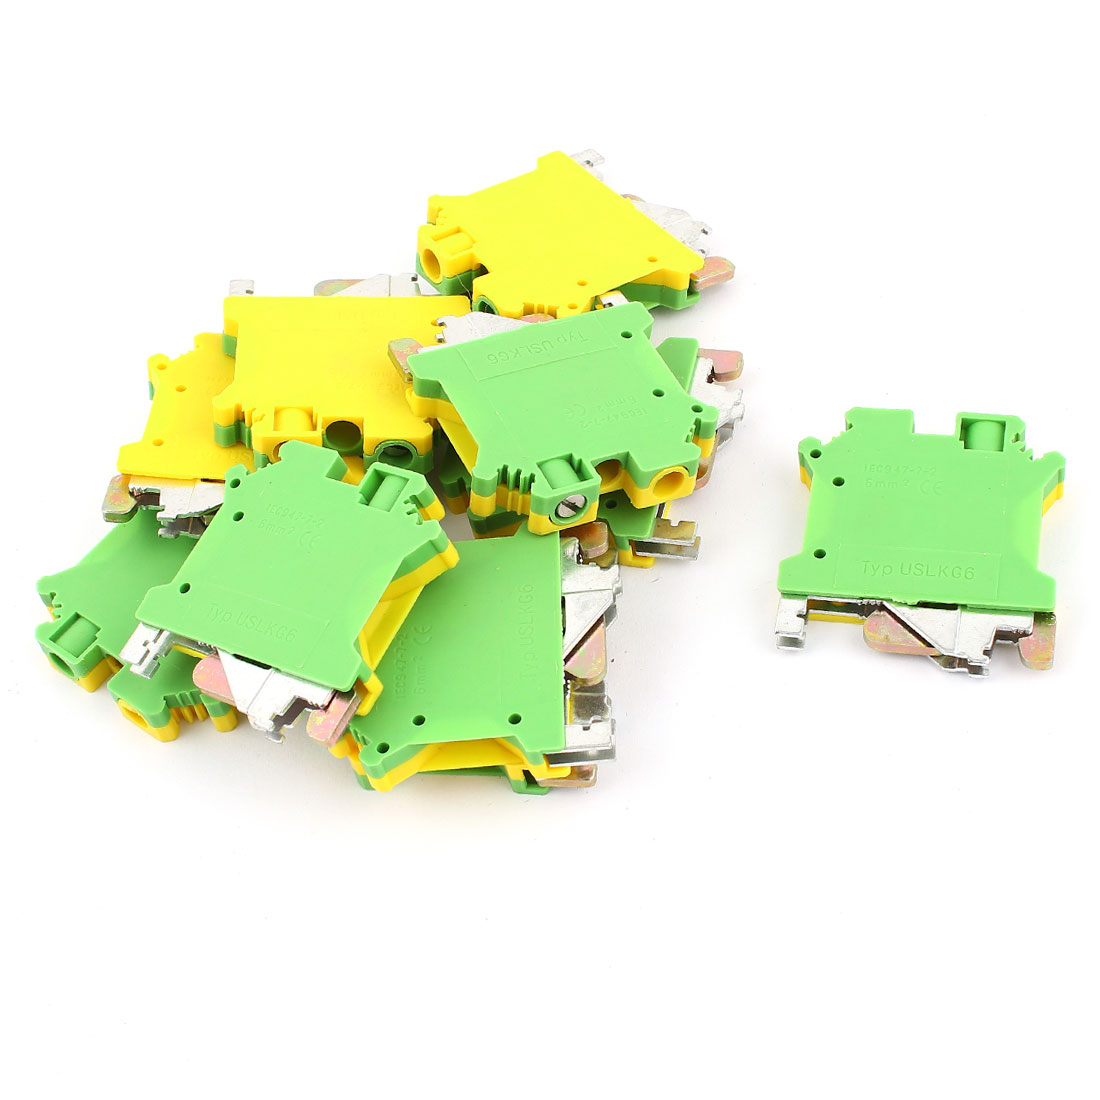 10 Pcs USLKG6 0.2-6mm2 Wire Rail Mount Grounding Terminal Block Yellow Green